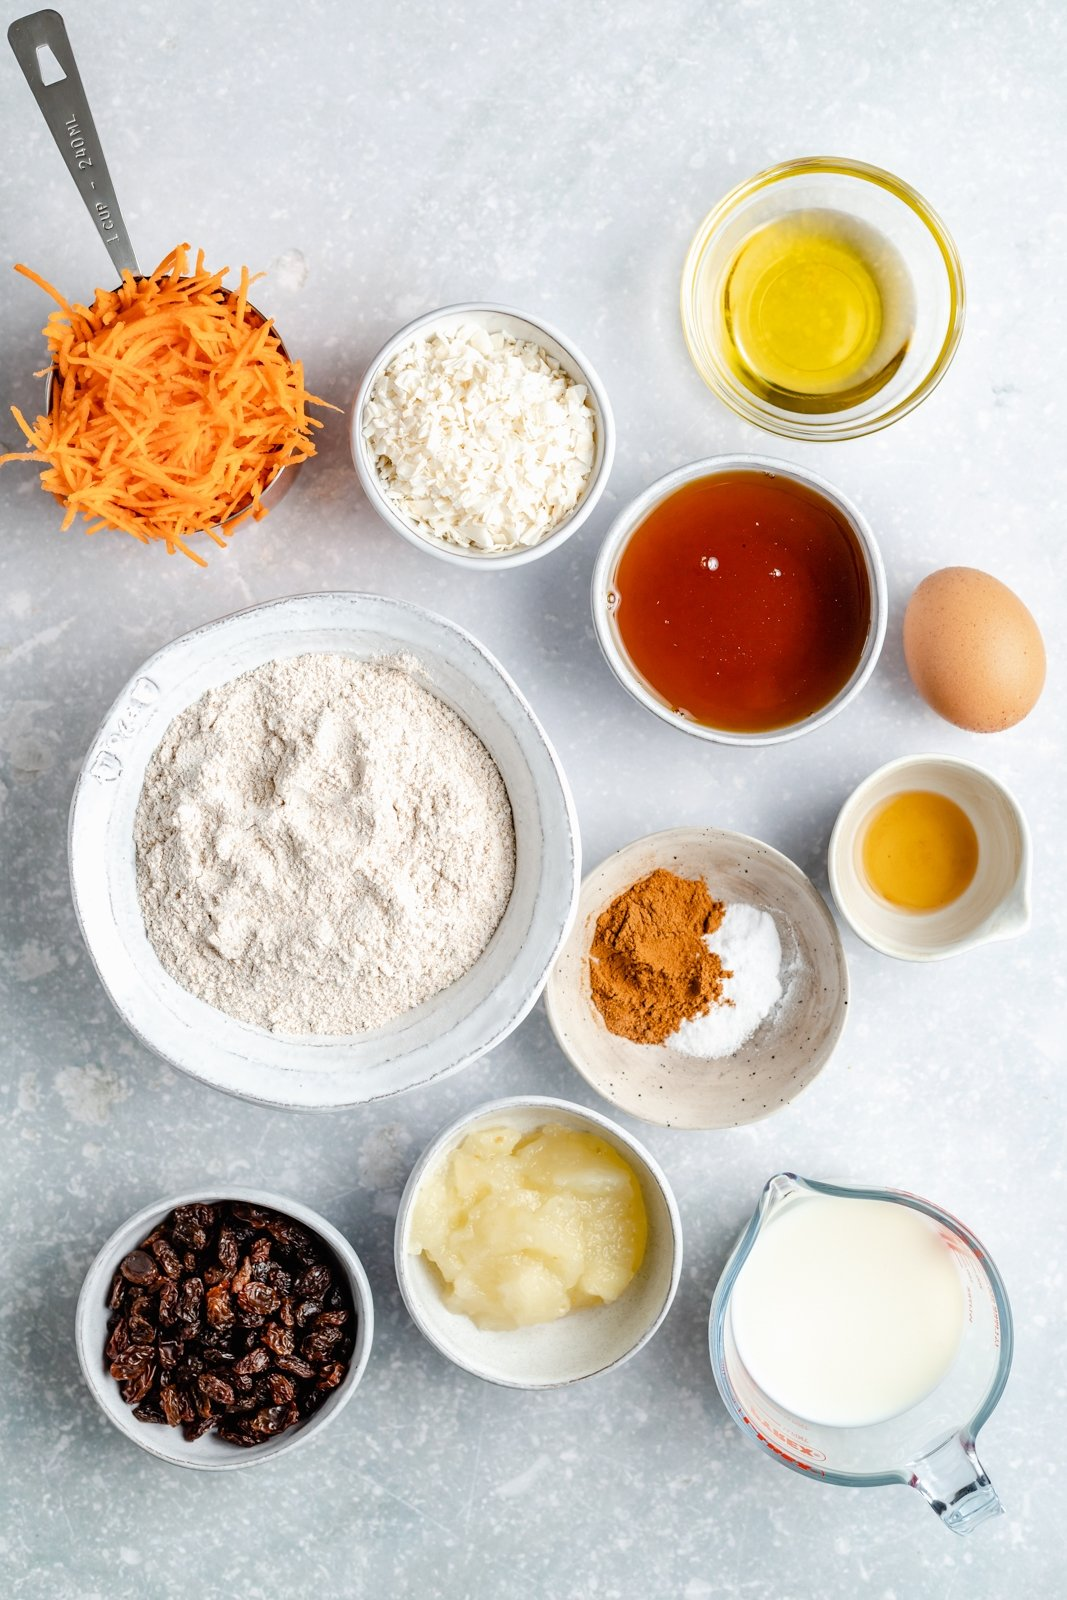 ingredients for carrot cake muffins on a grey board